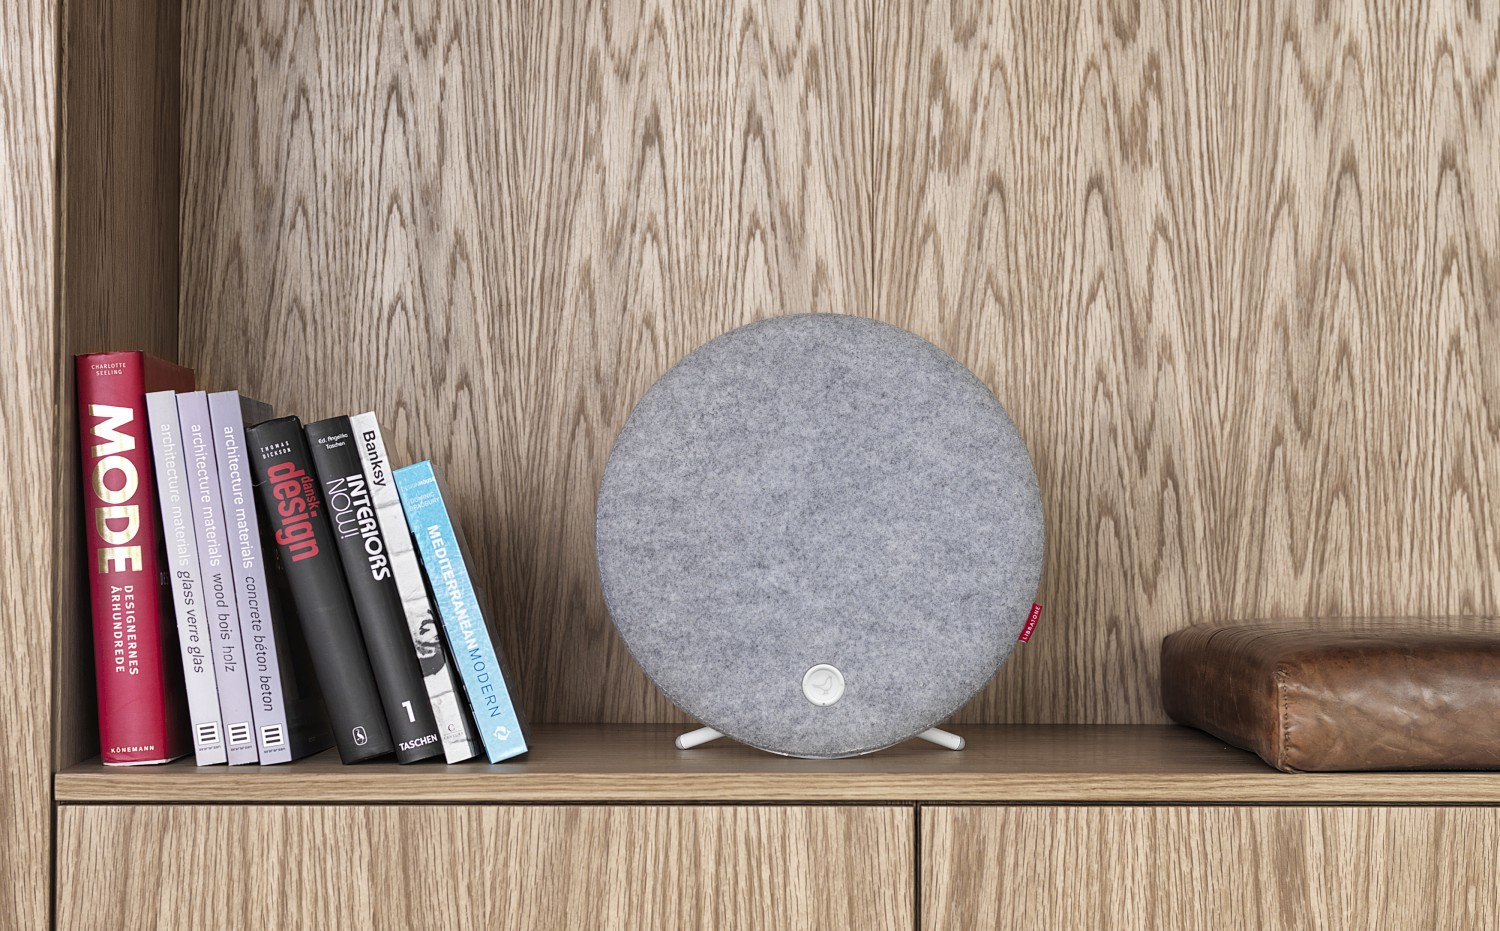 HiFi Libratone Loop erhält Red Dot Award in der Kategorie Produktdesign - News, Bild 1